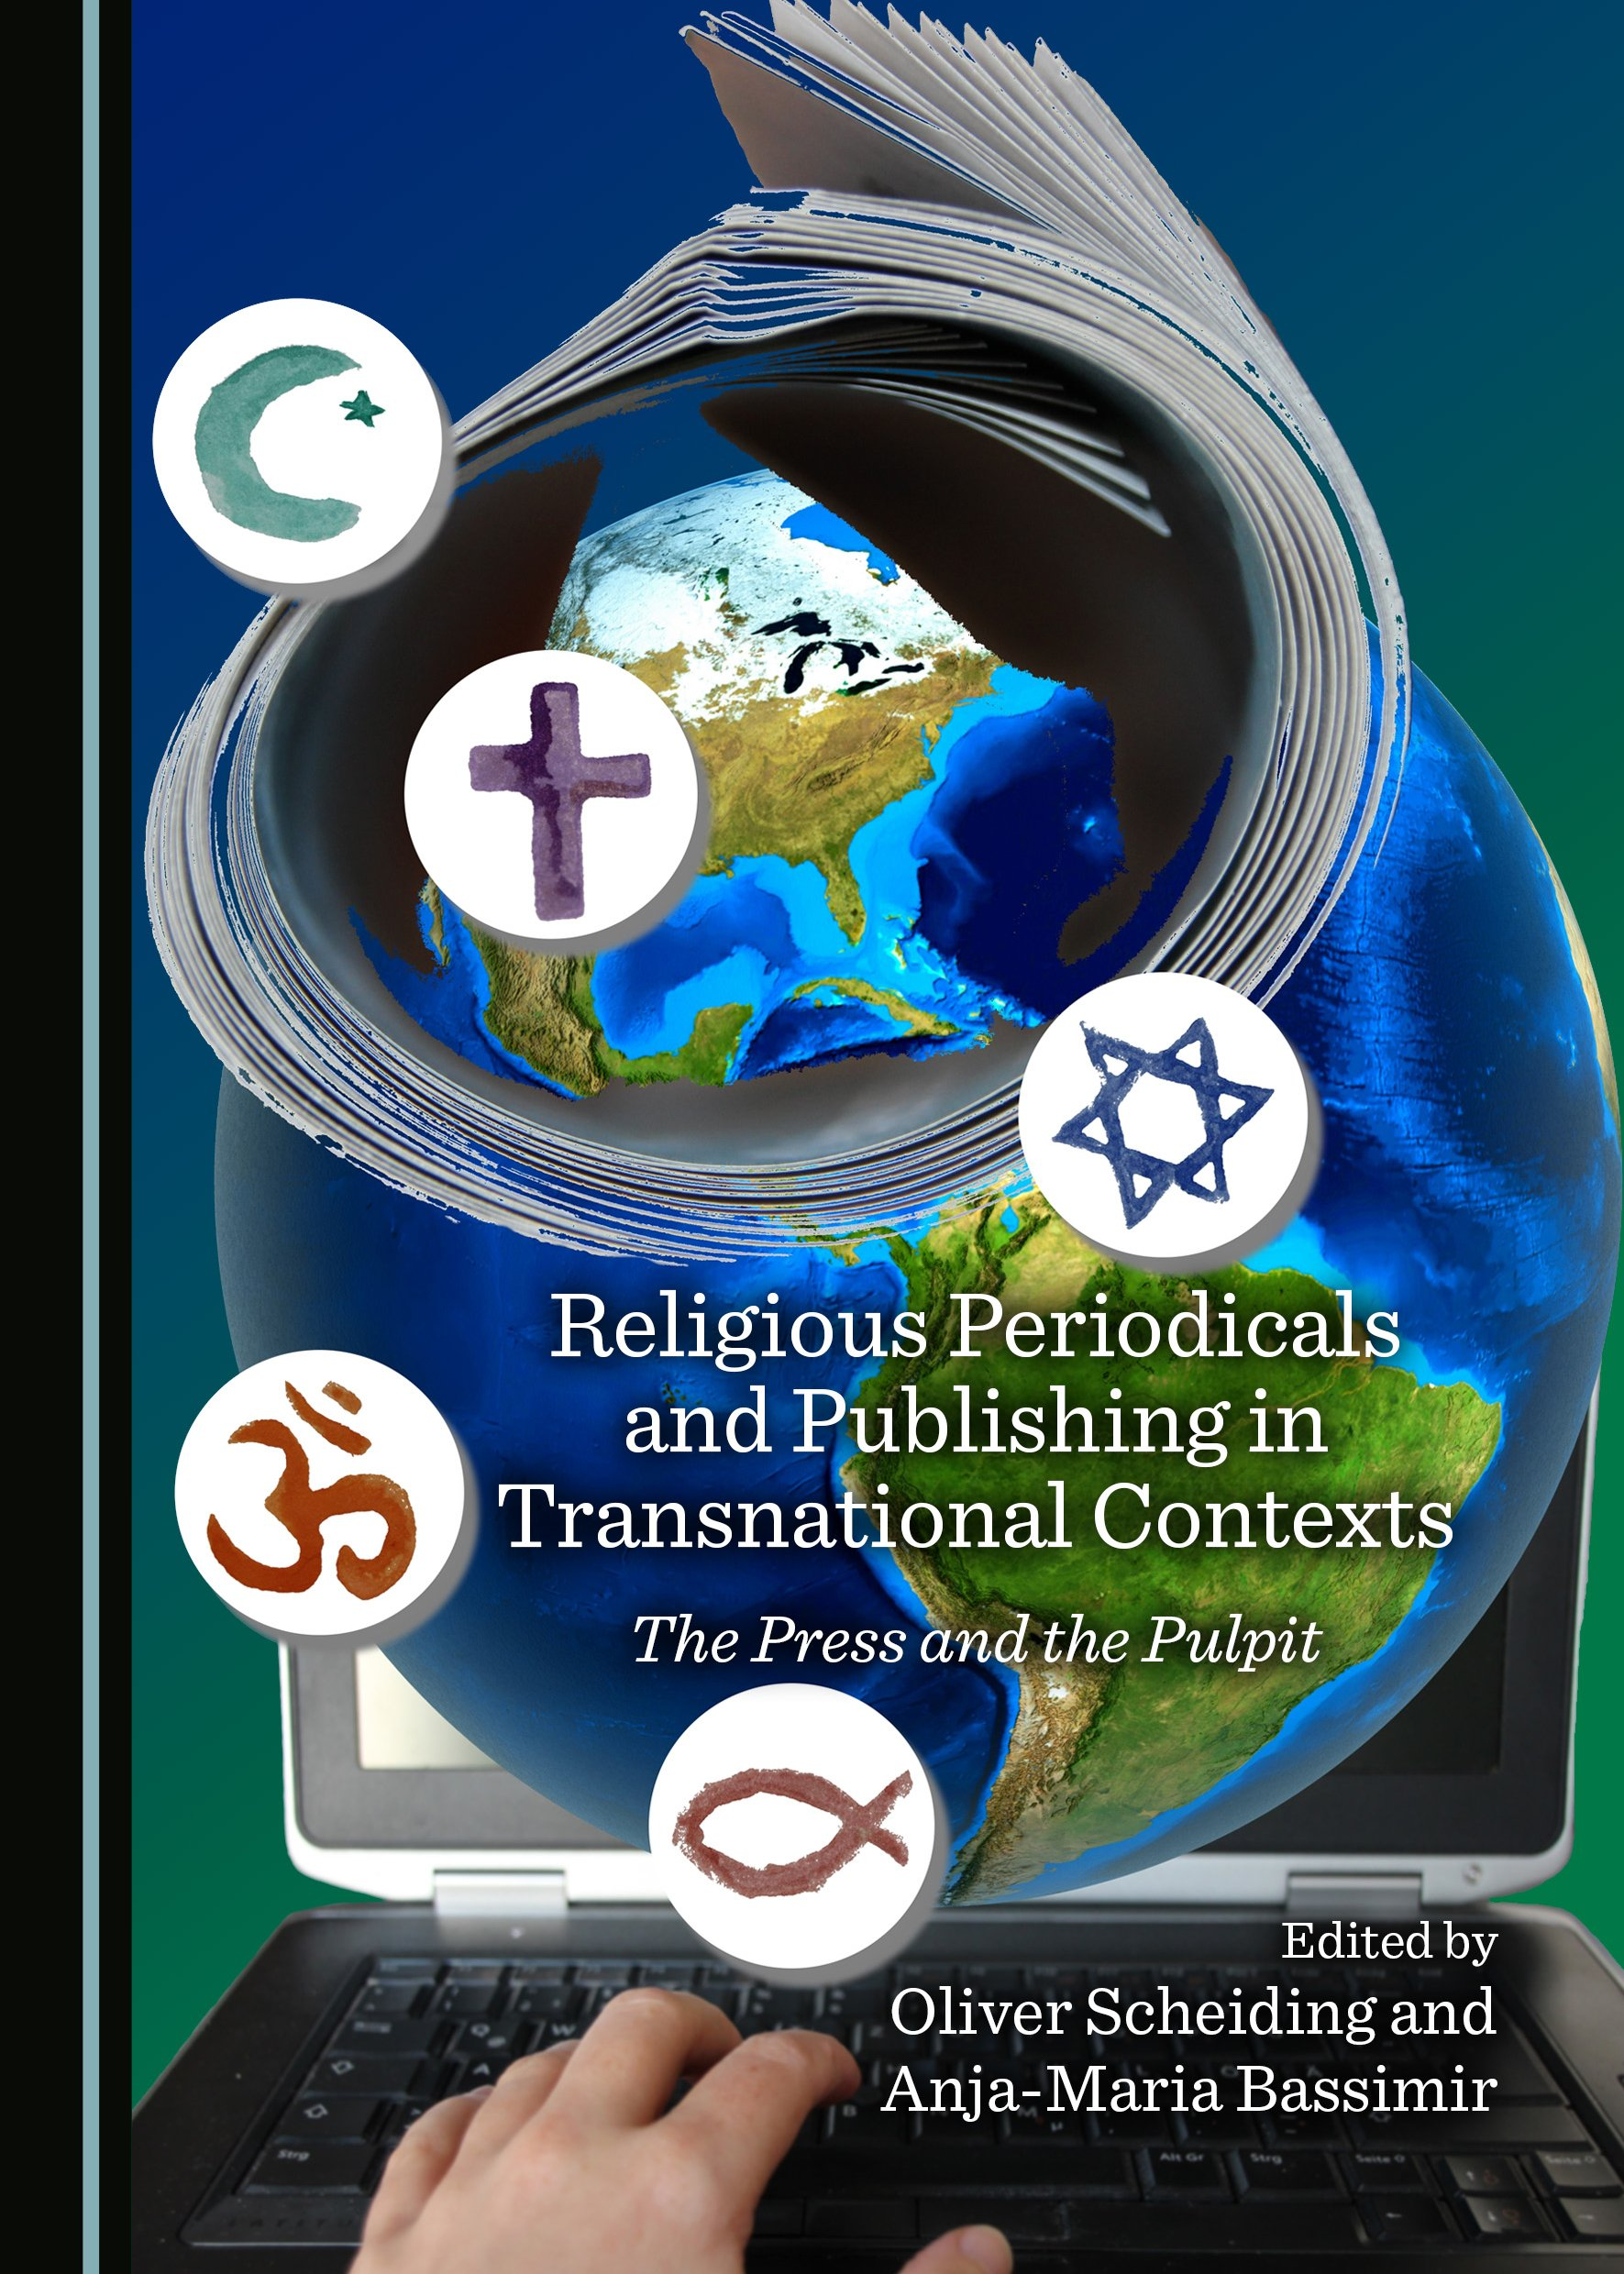 Religious Periodicals and Publishing in Transnational Contexts: The Press and the Pulpit